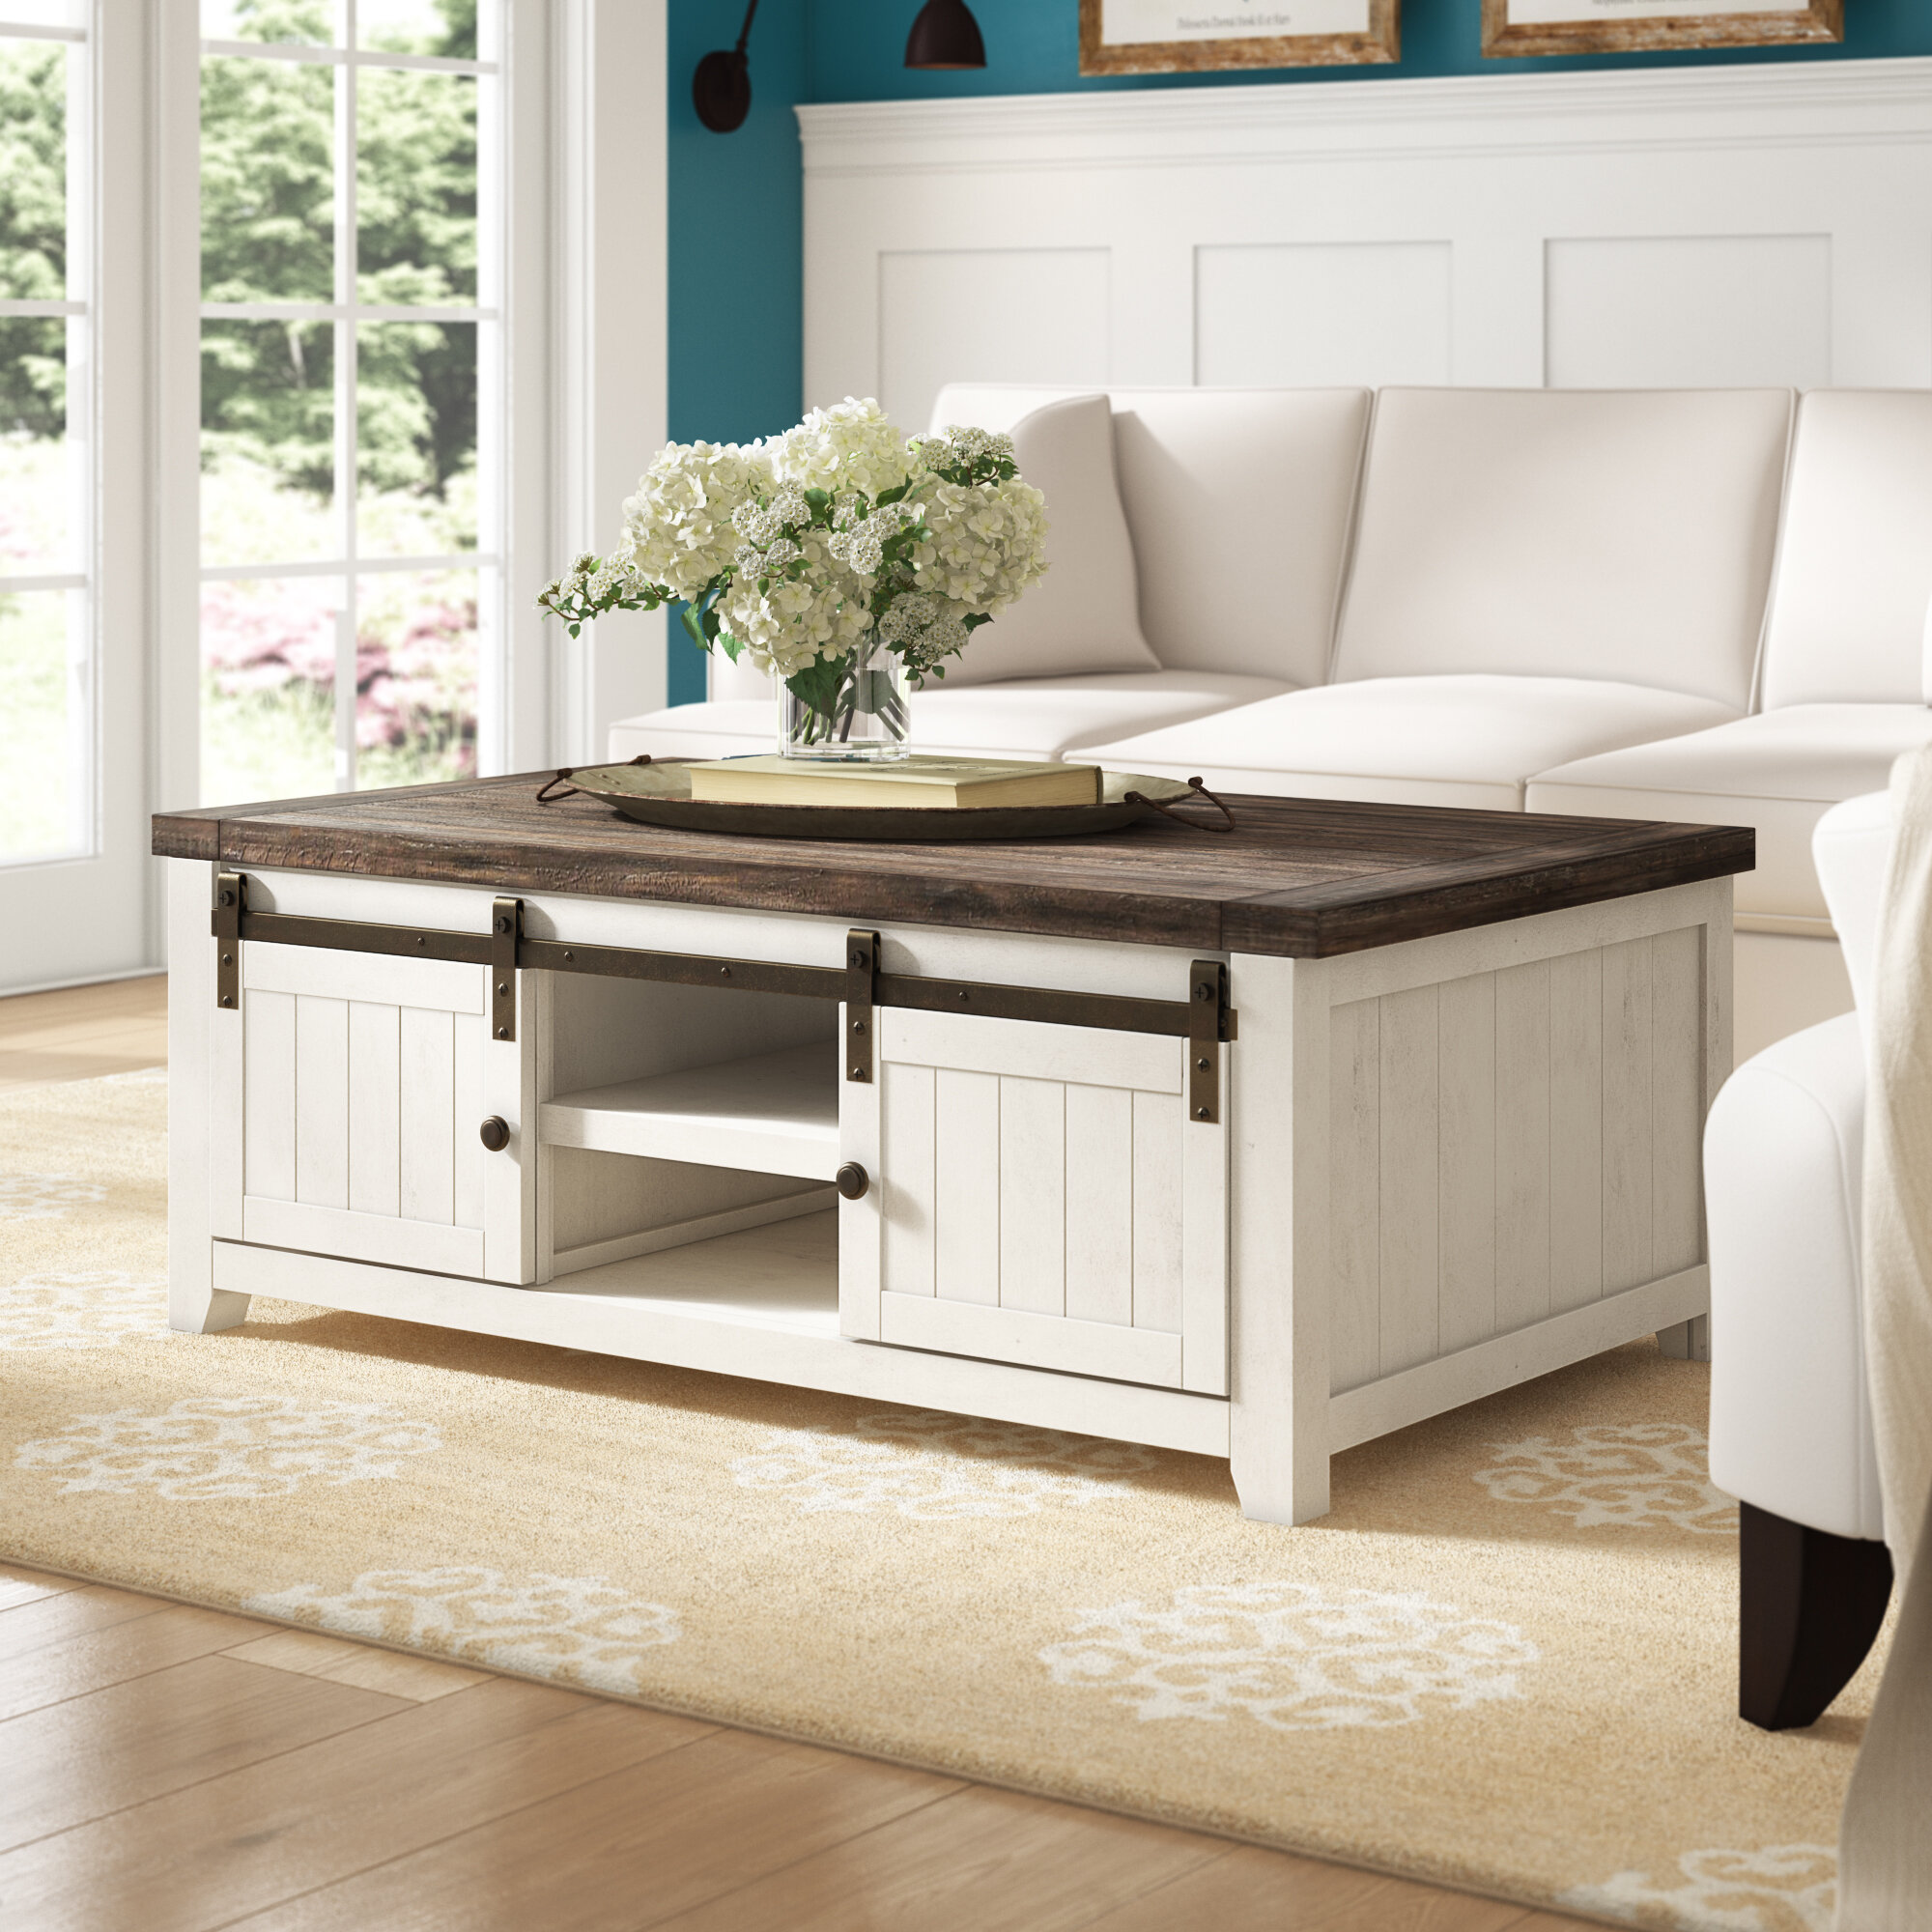 Cottage Country Coffee Tables Free Shipping Over 35 Wayfair